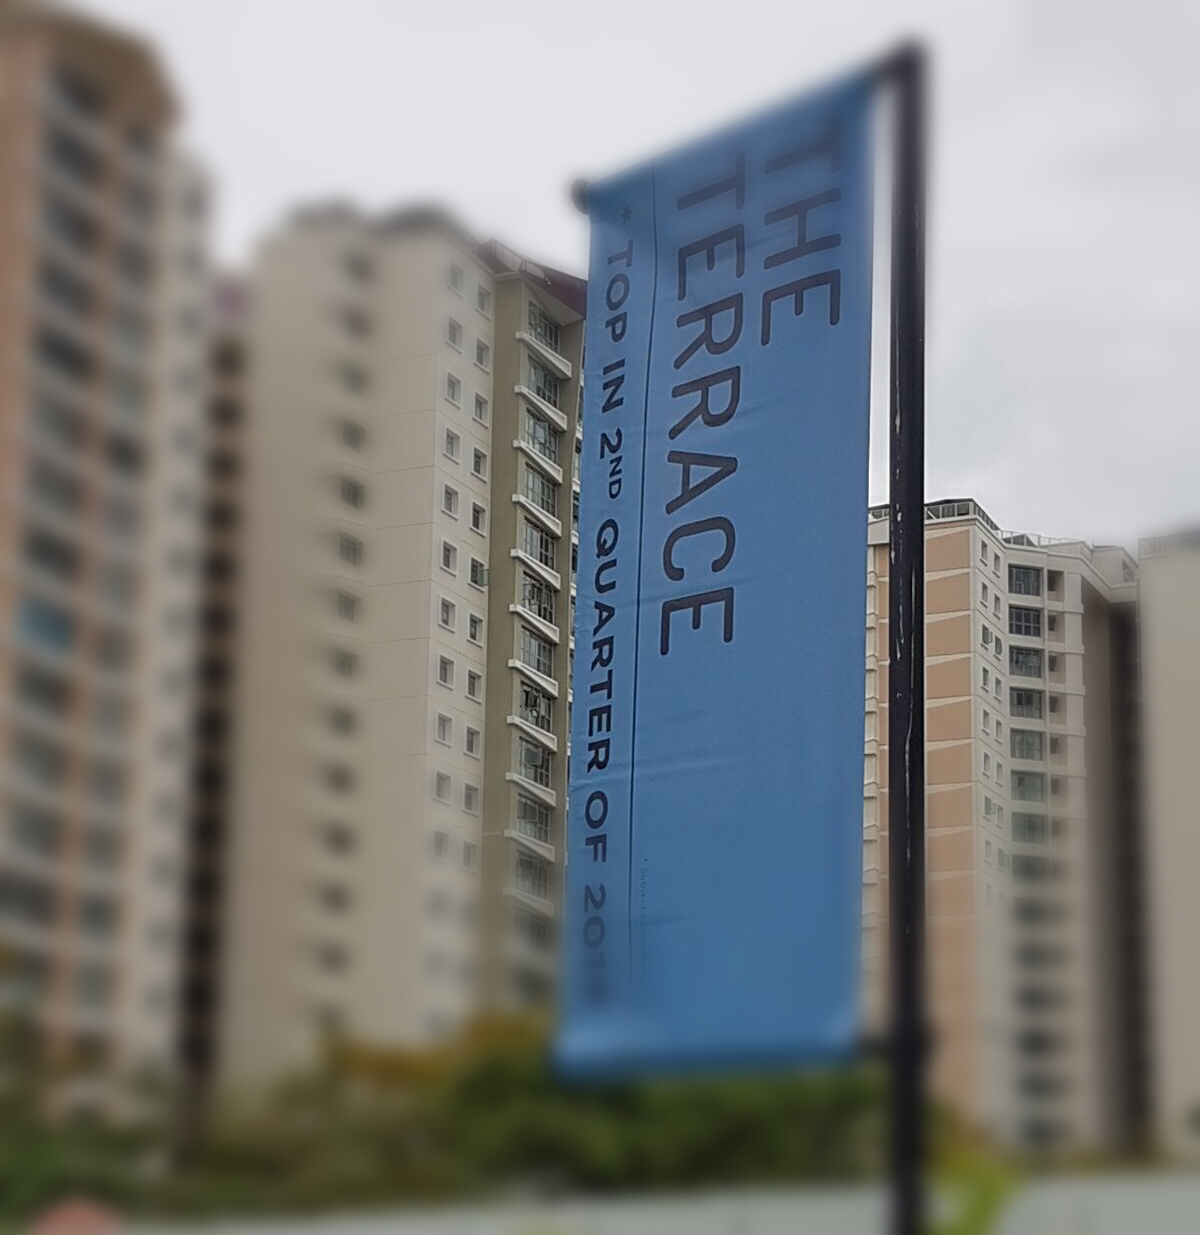 Terrace EC in Punggol, Terrace Ec with no resale levy, Terrace EC price discount